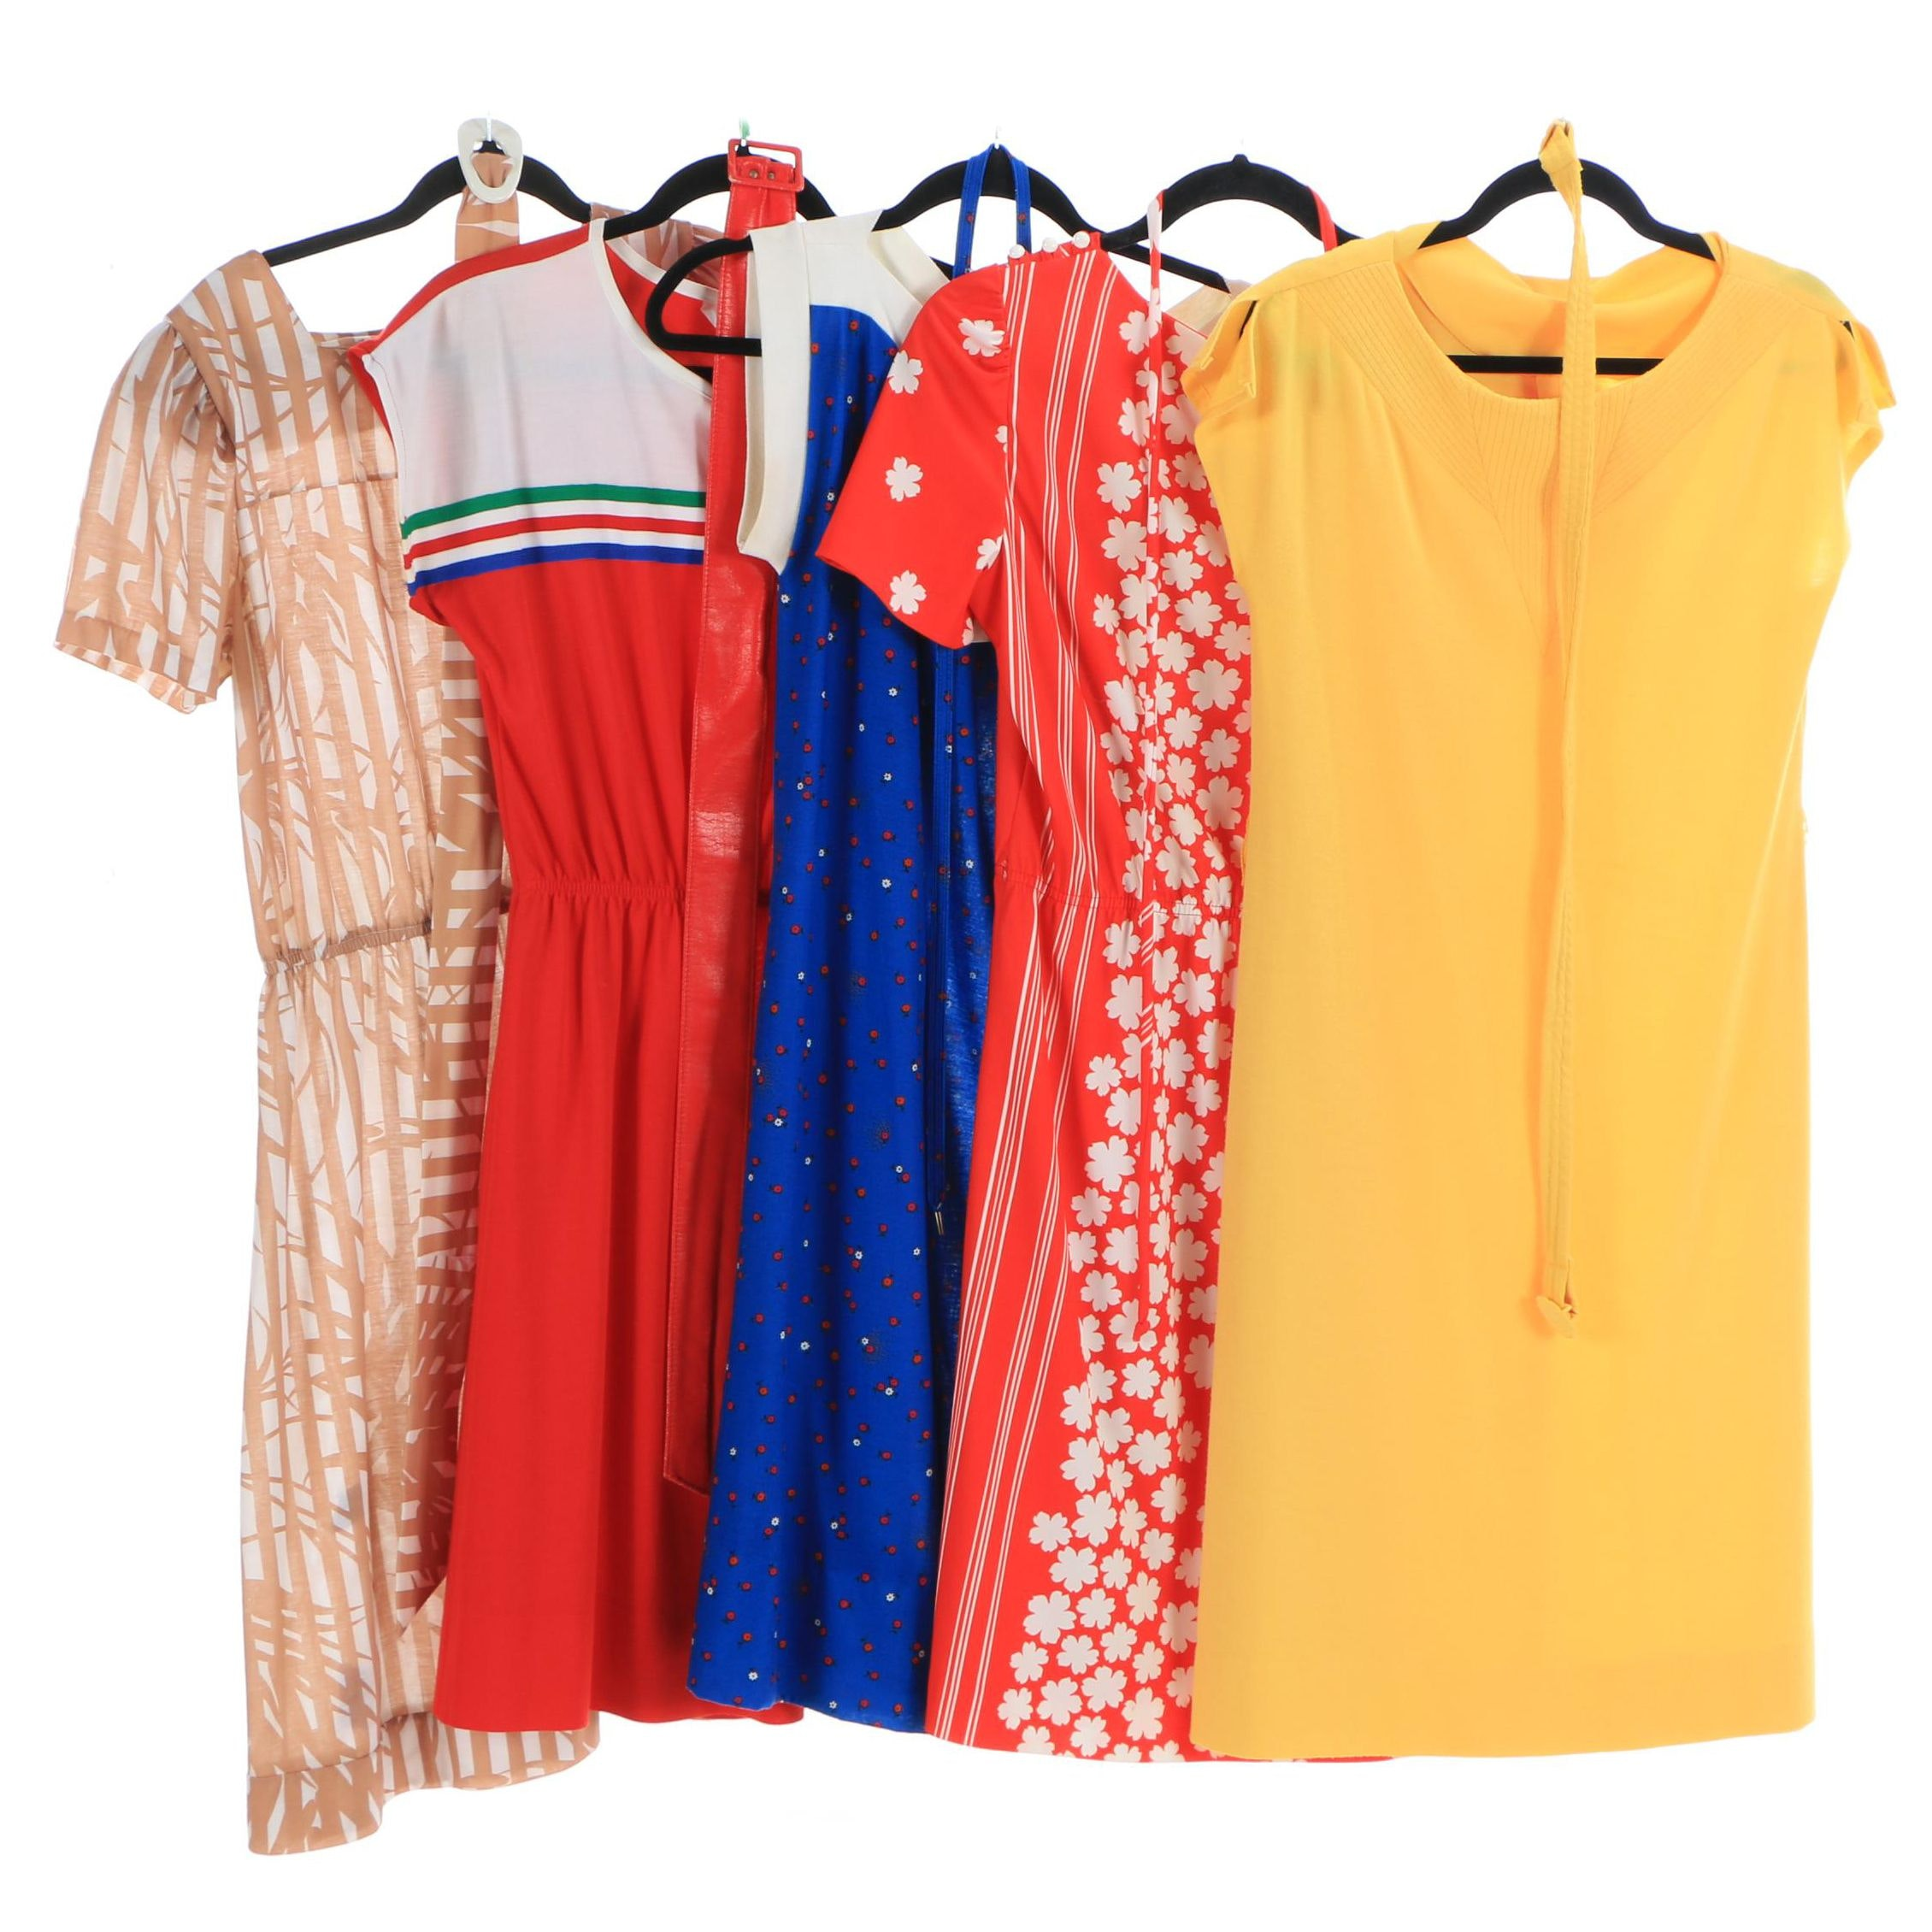 Women's Vintage Dresses Including Mari Lynn, Komar and Messages